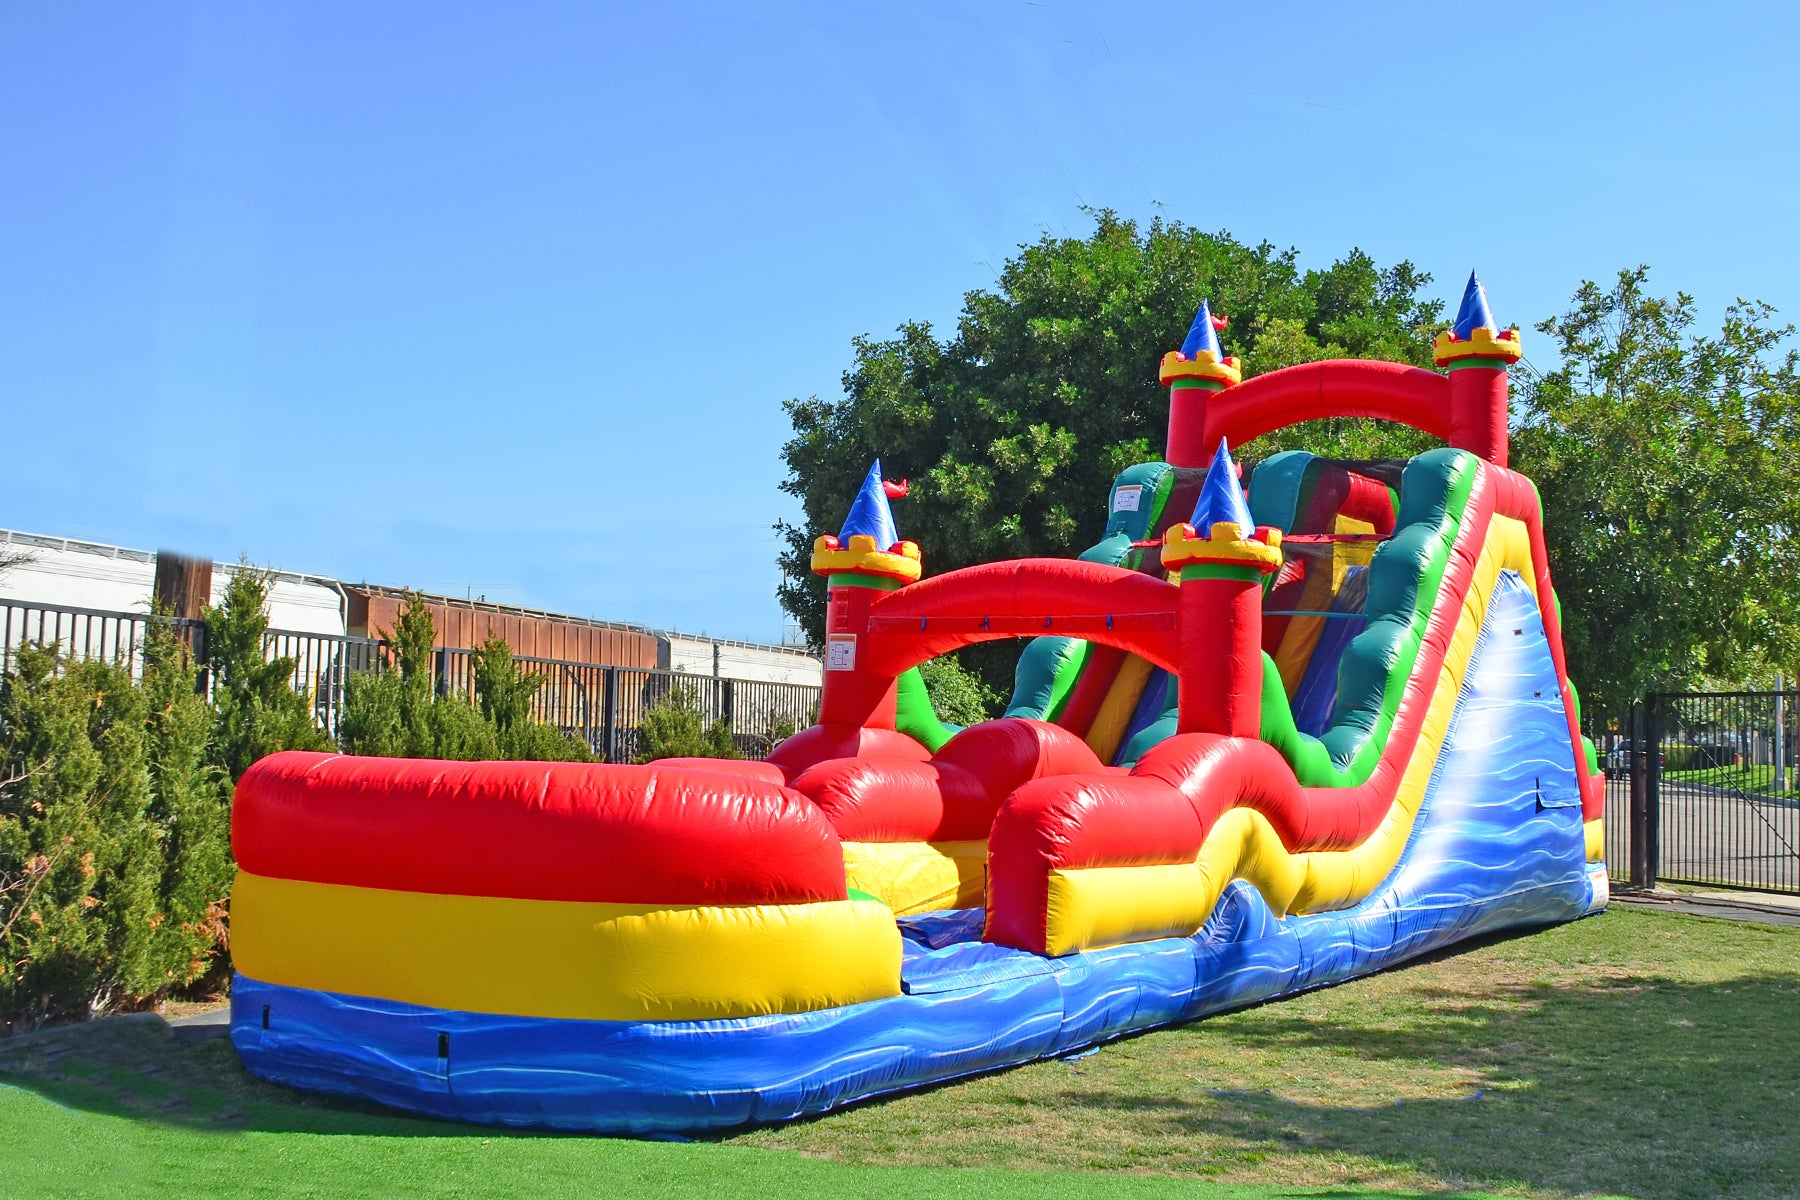 75 FT CIRCUS OBSTACLE WITH DUAL LANE ROLLER COASTER SLIDE